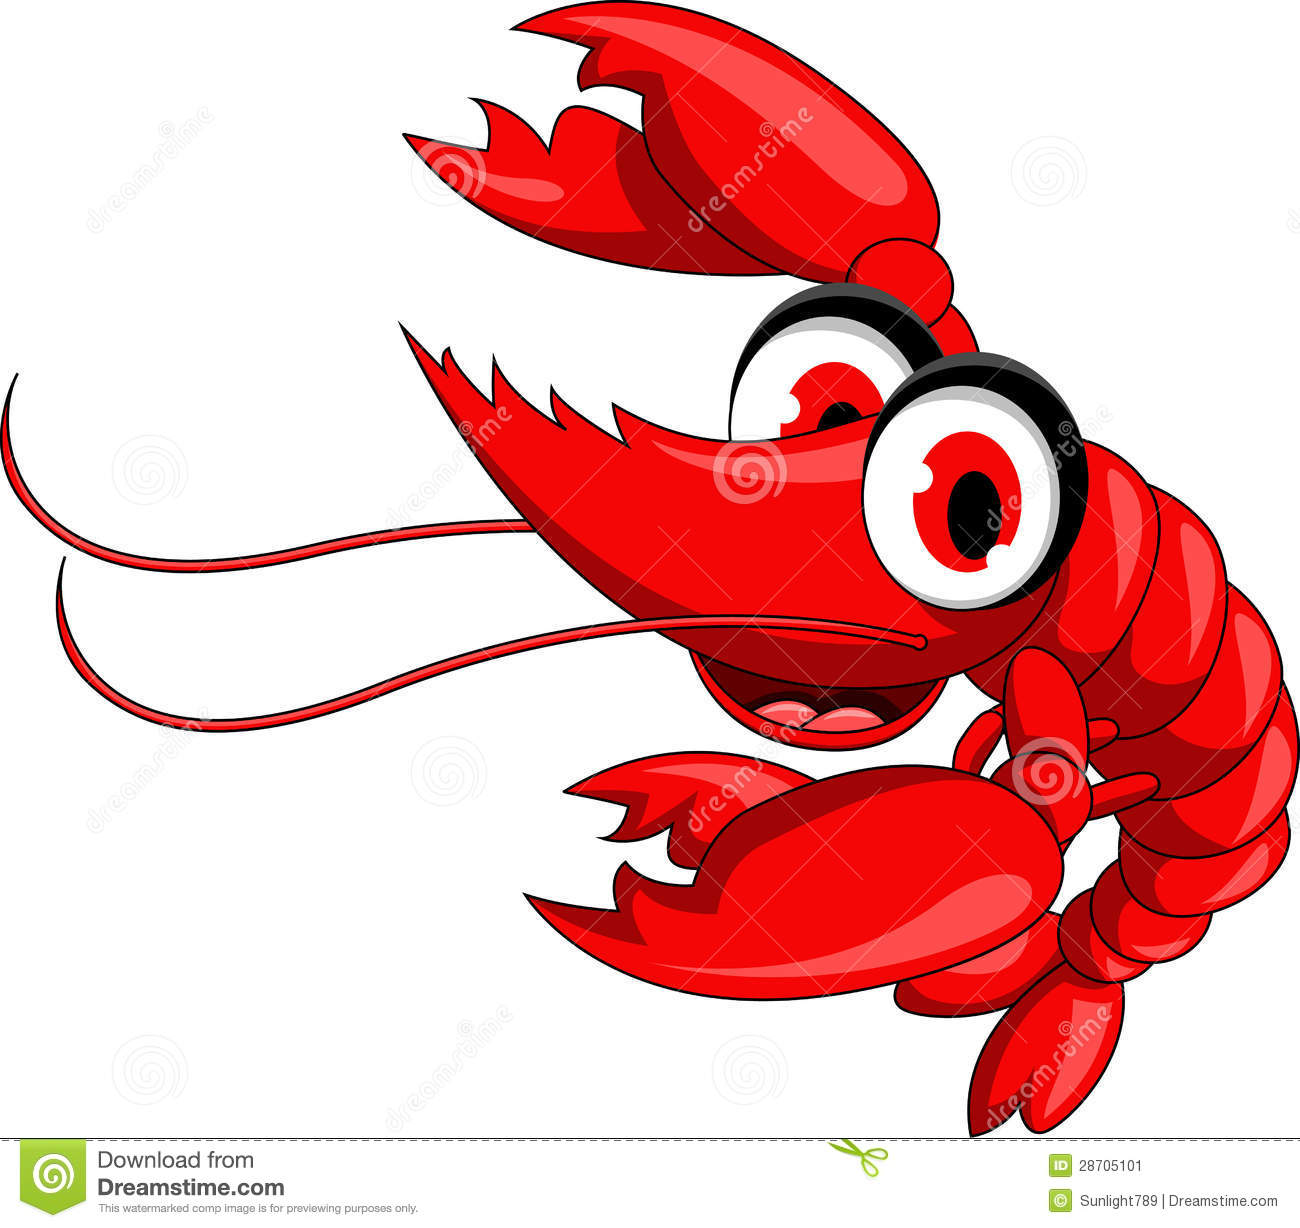 Cooked Shrimp Clipart | Clipart Panda - Free Clipart Images